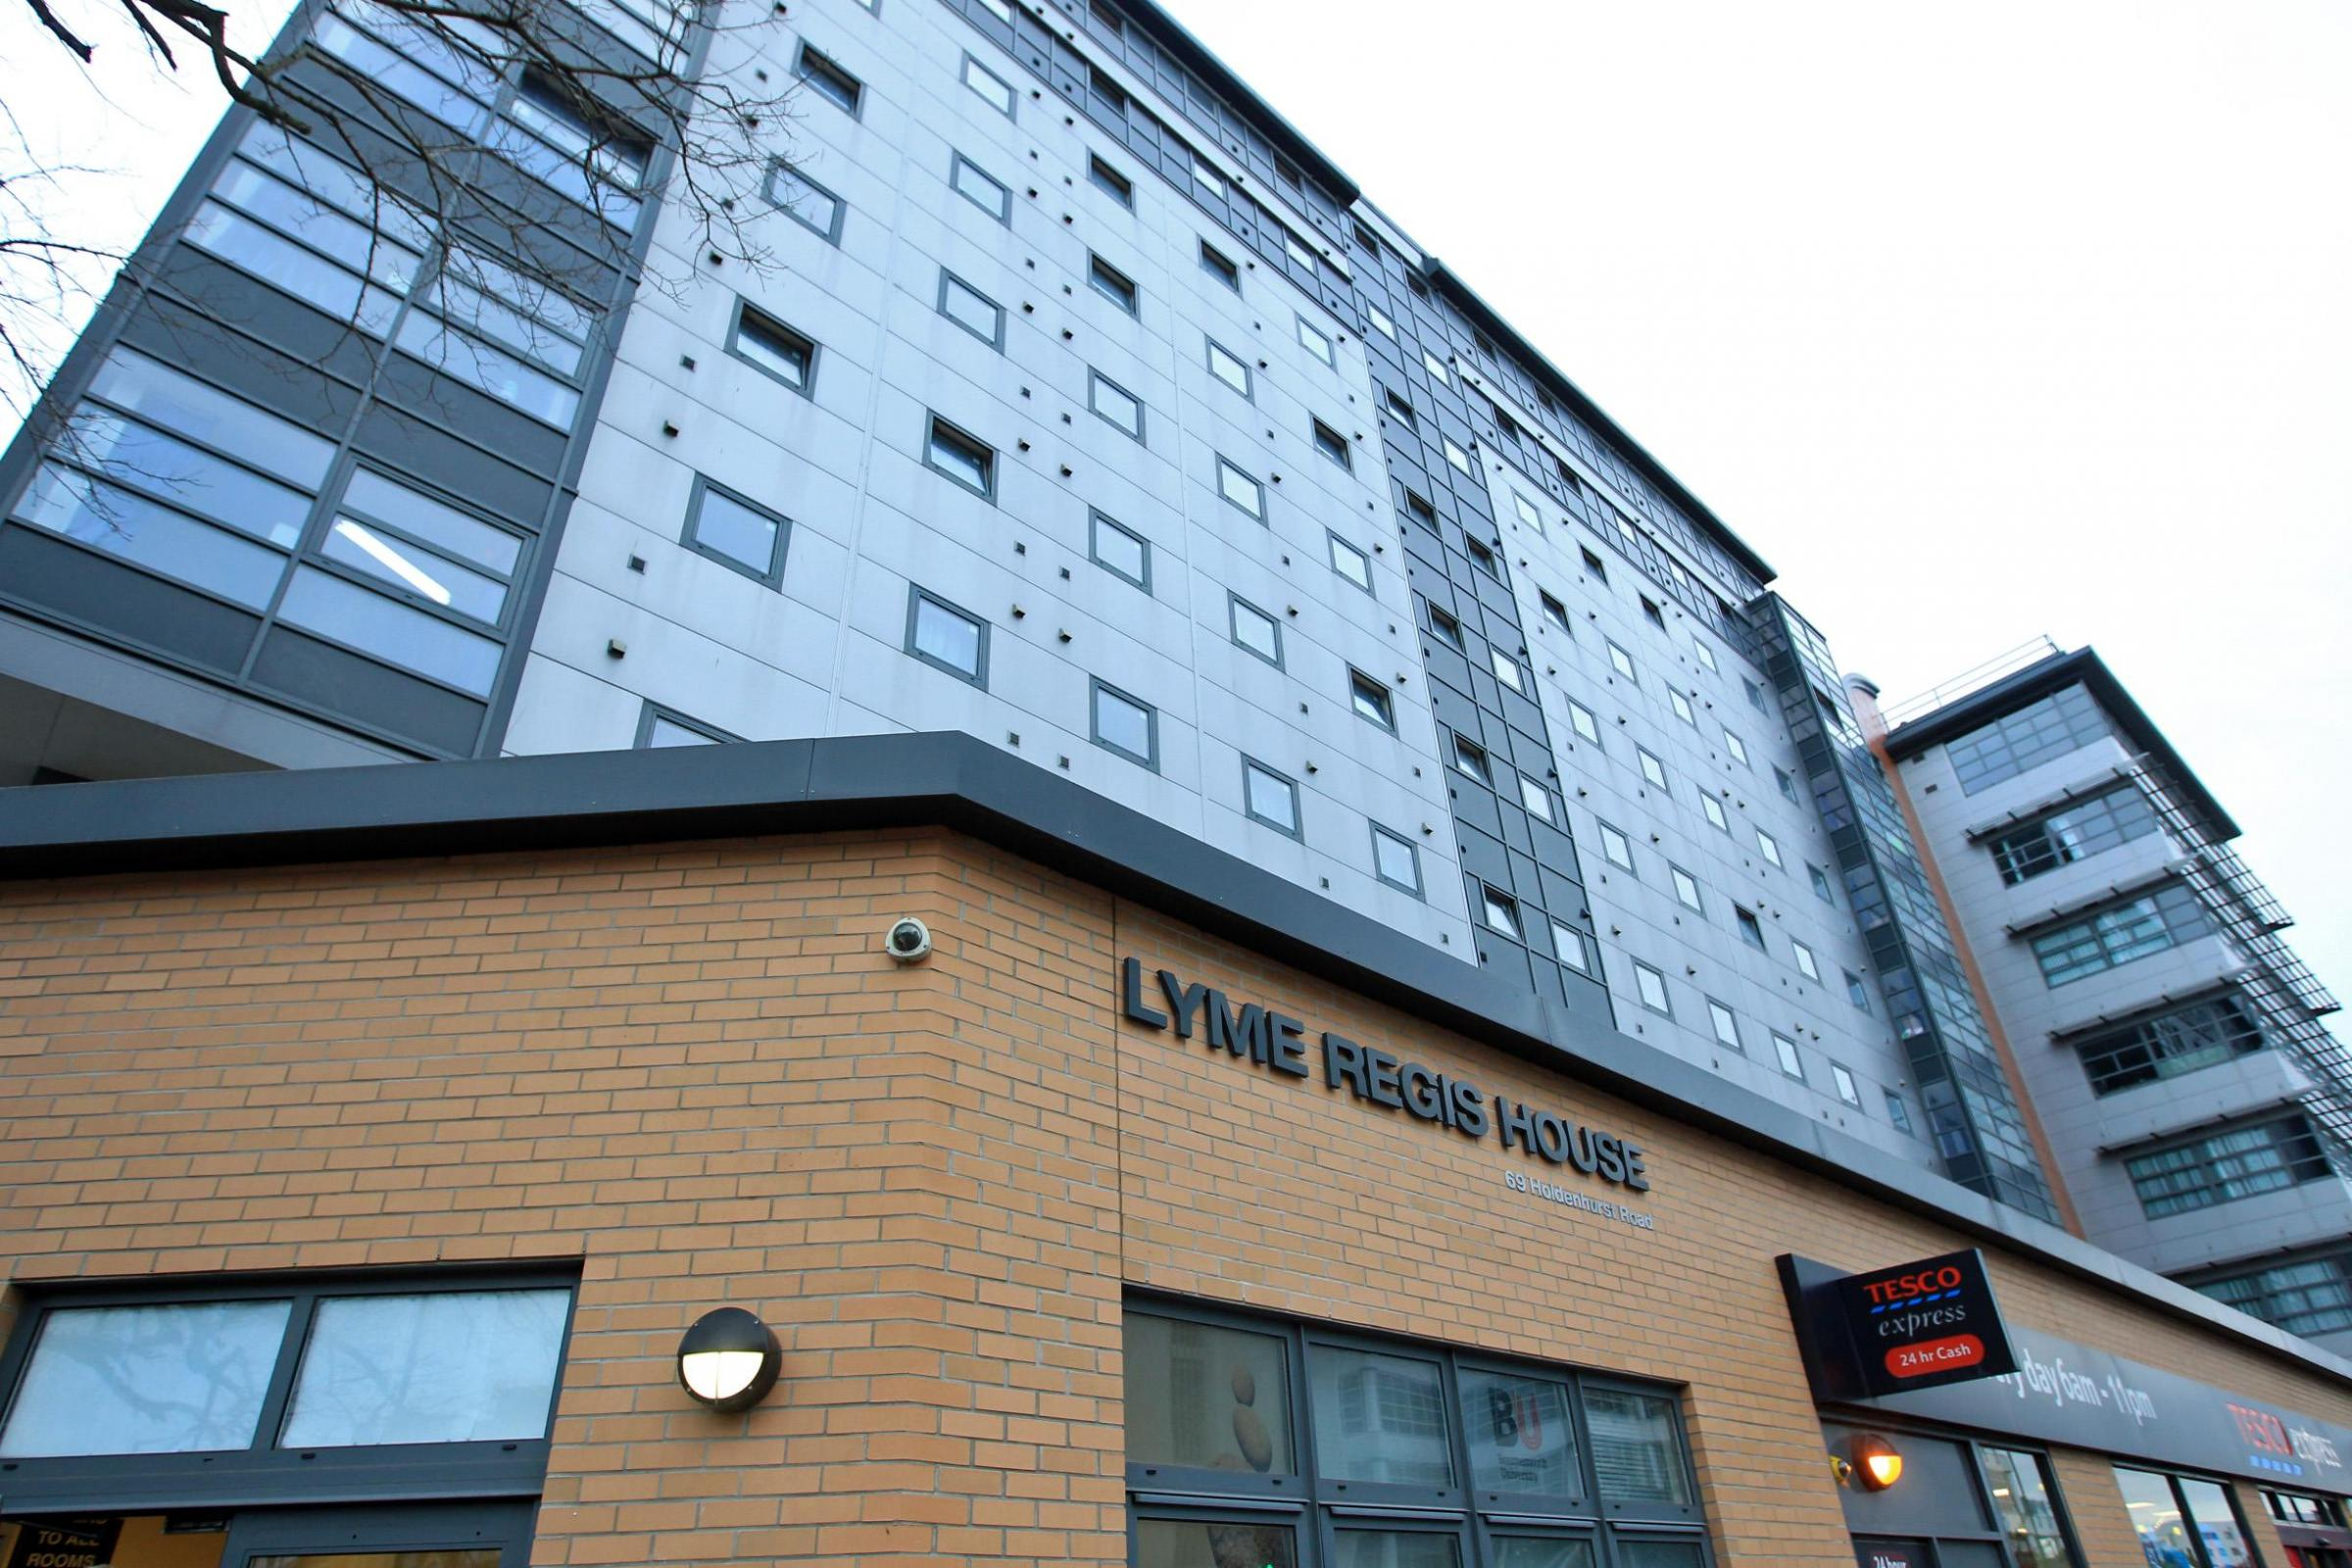 Police Called To Lyme Regis House After Reports Man Had Fallen Out Of Window Student Accommodation From Bournemouth Echo